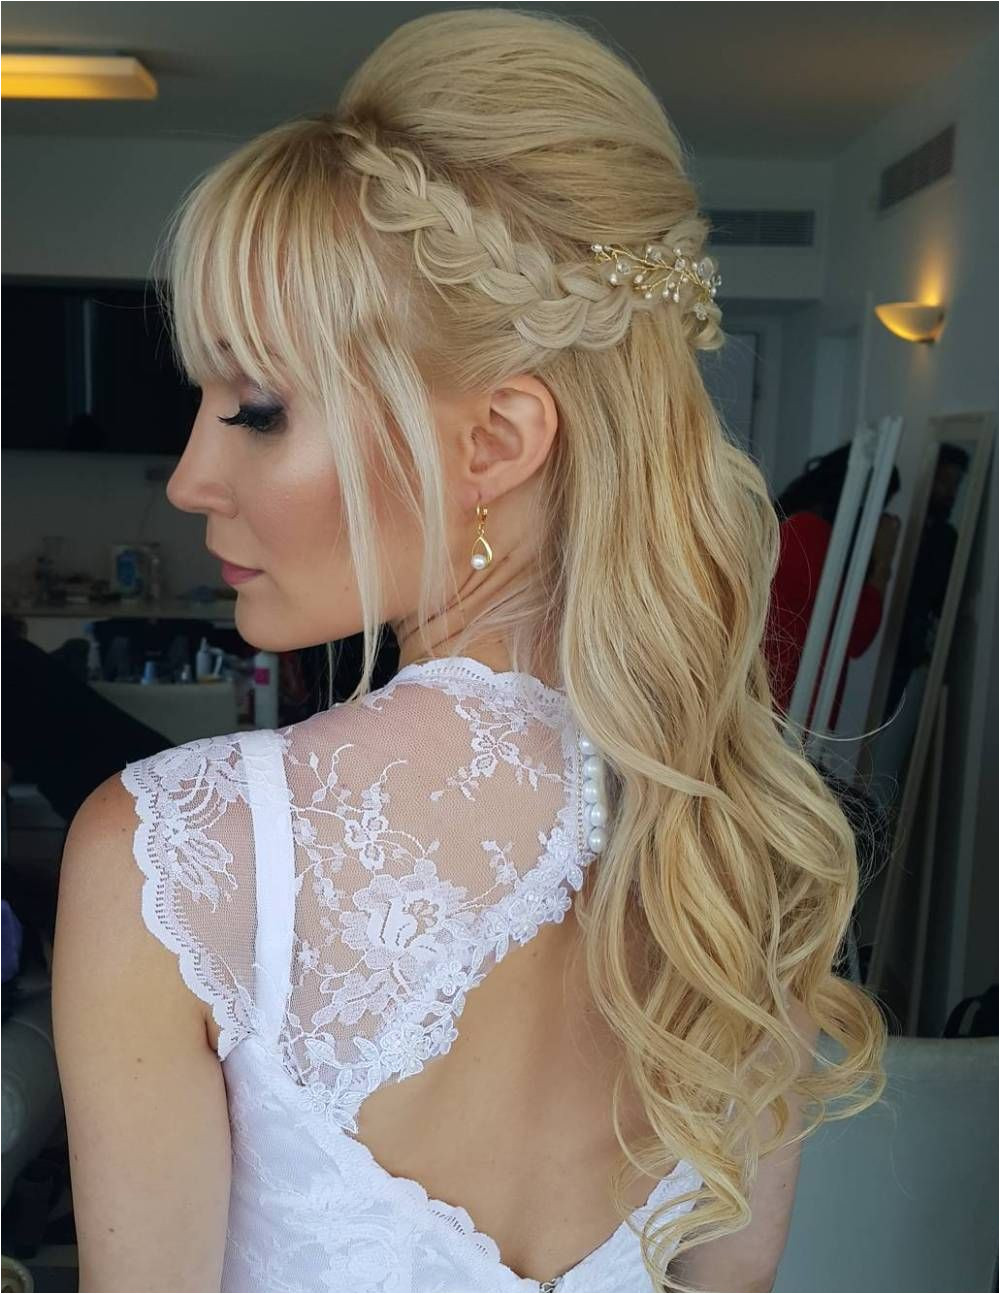 Are you looking for Half Up Half Down Wedding Hairstyles See our collection full of